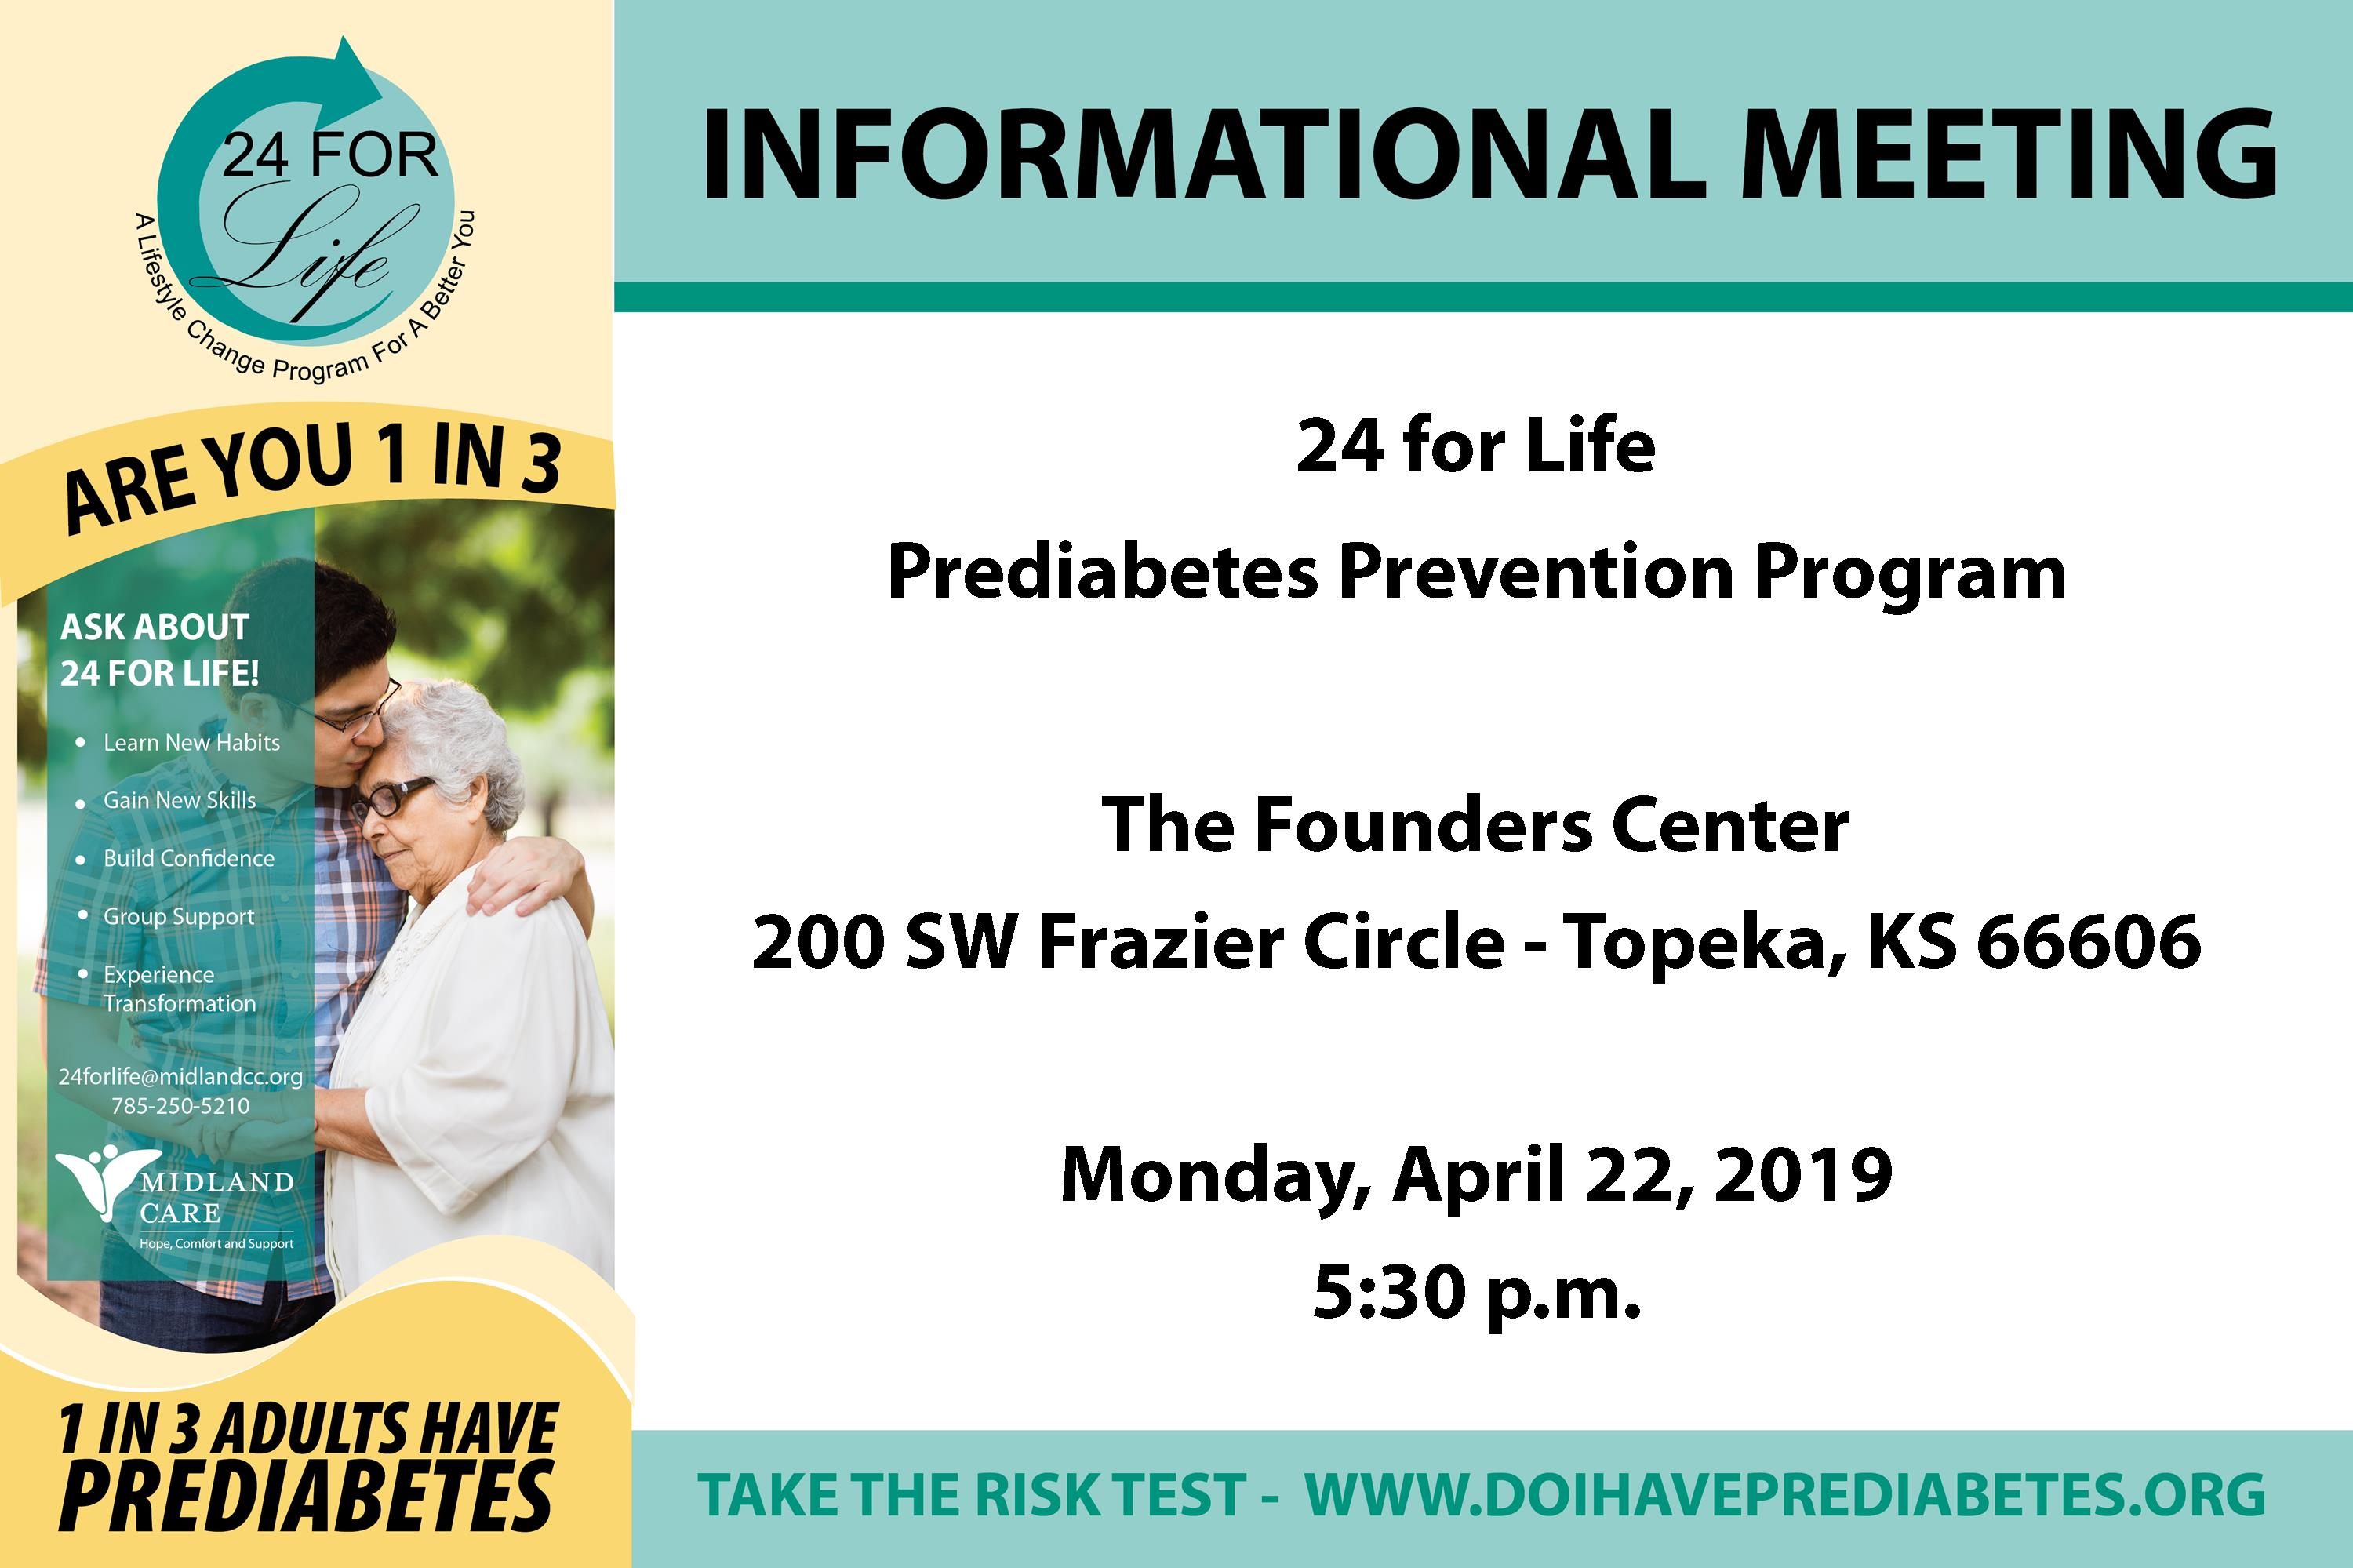 24 for Life - Informational Meeting @ Midland Care - Founders Center | Topeka | Kansas | United States